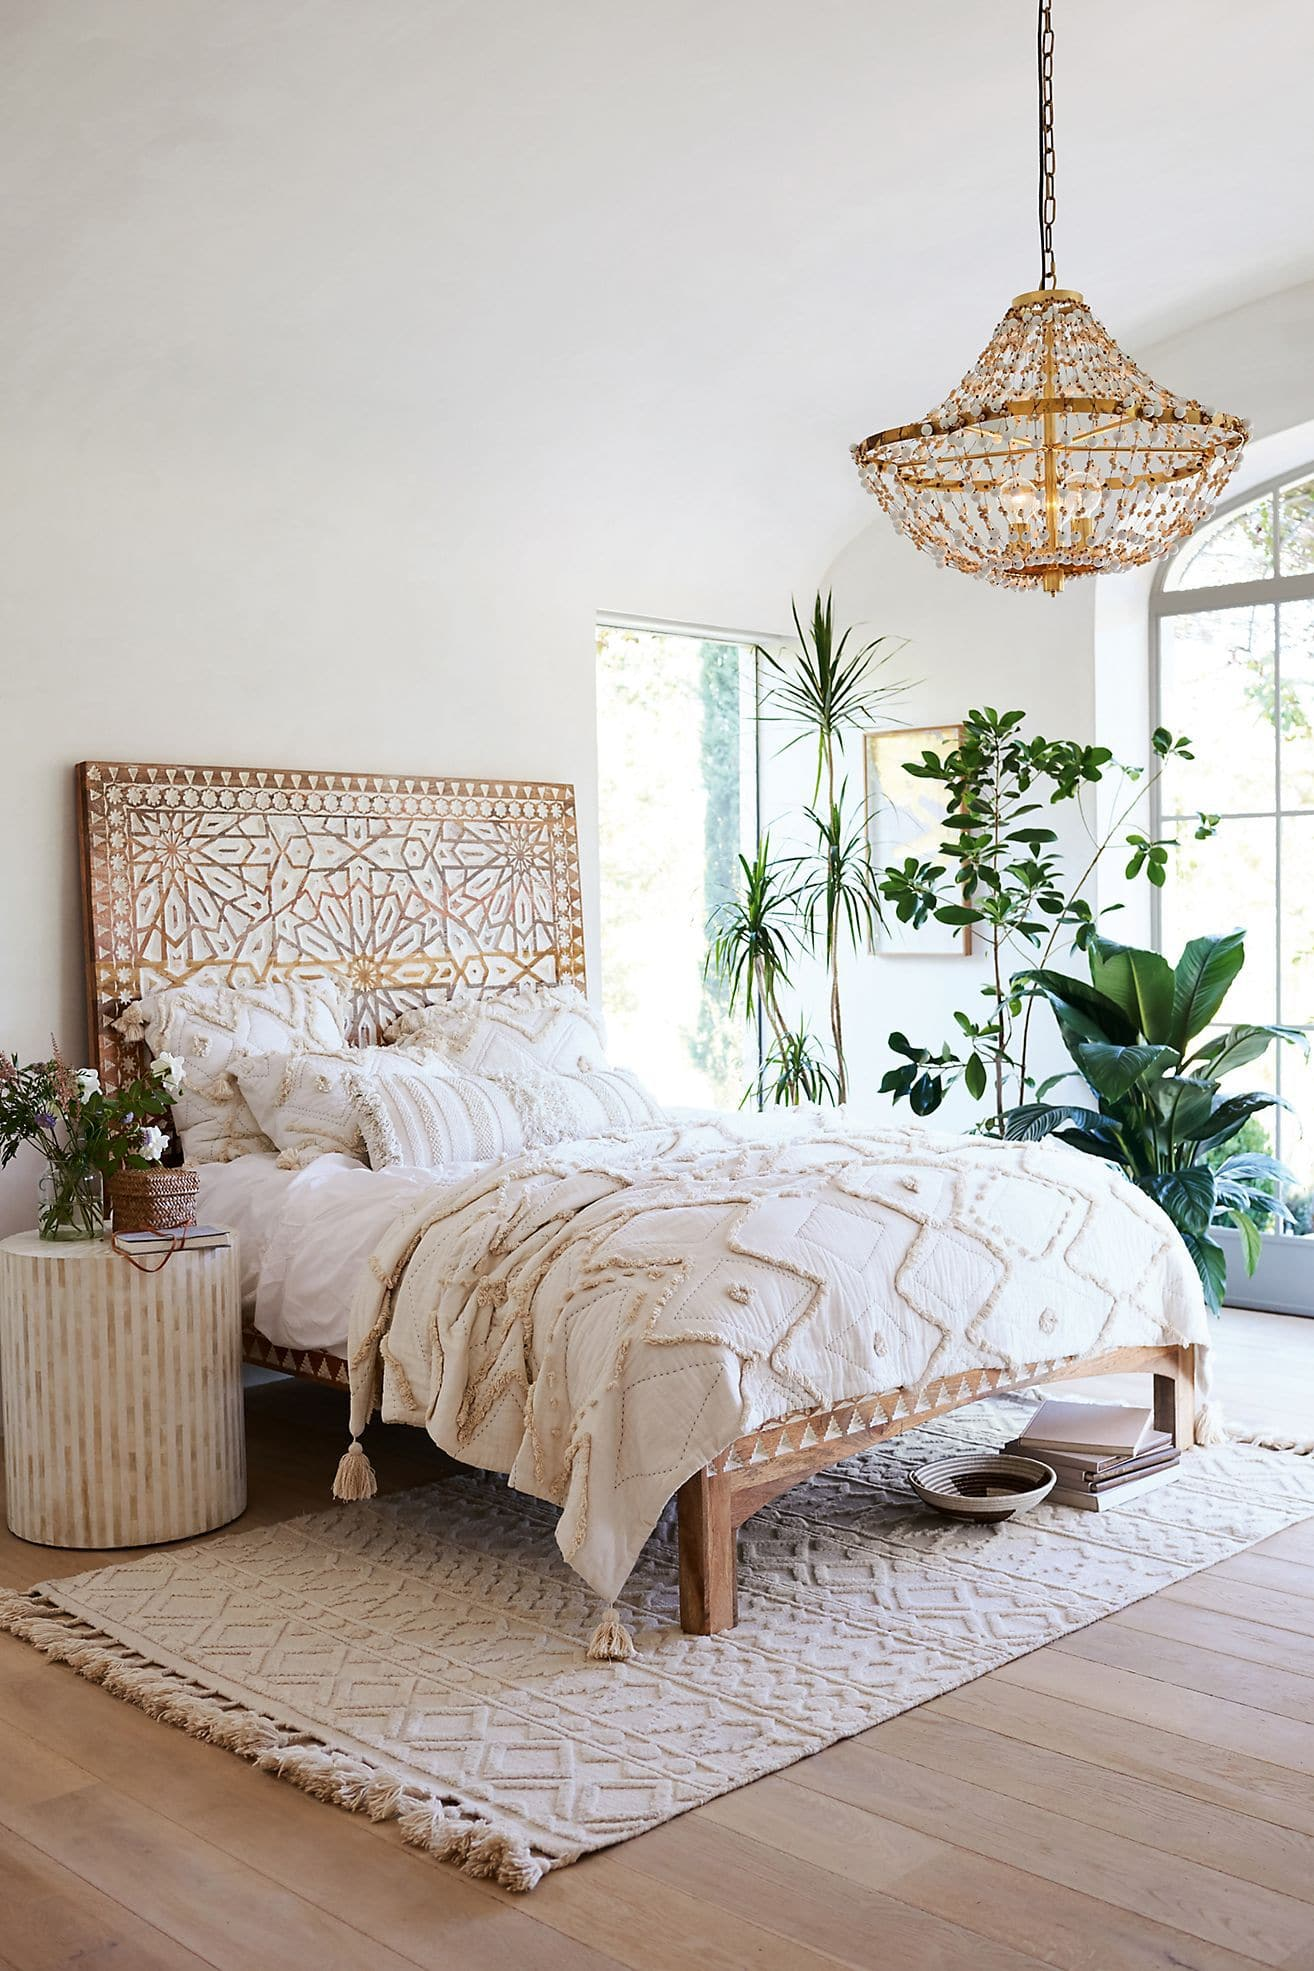 22 Gorgeous Boho Bedroom Ideas